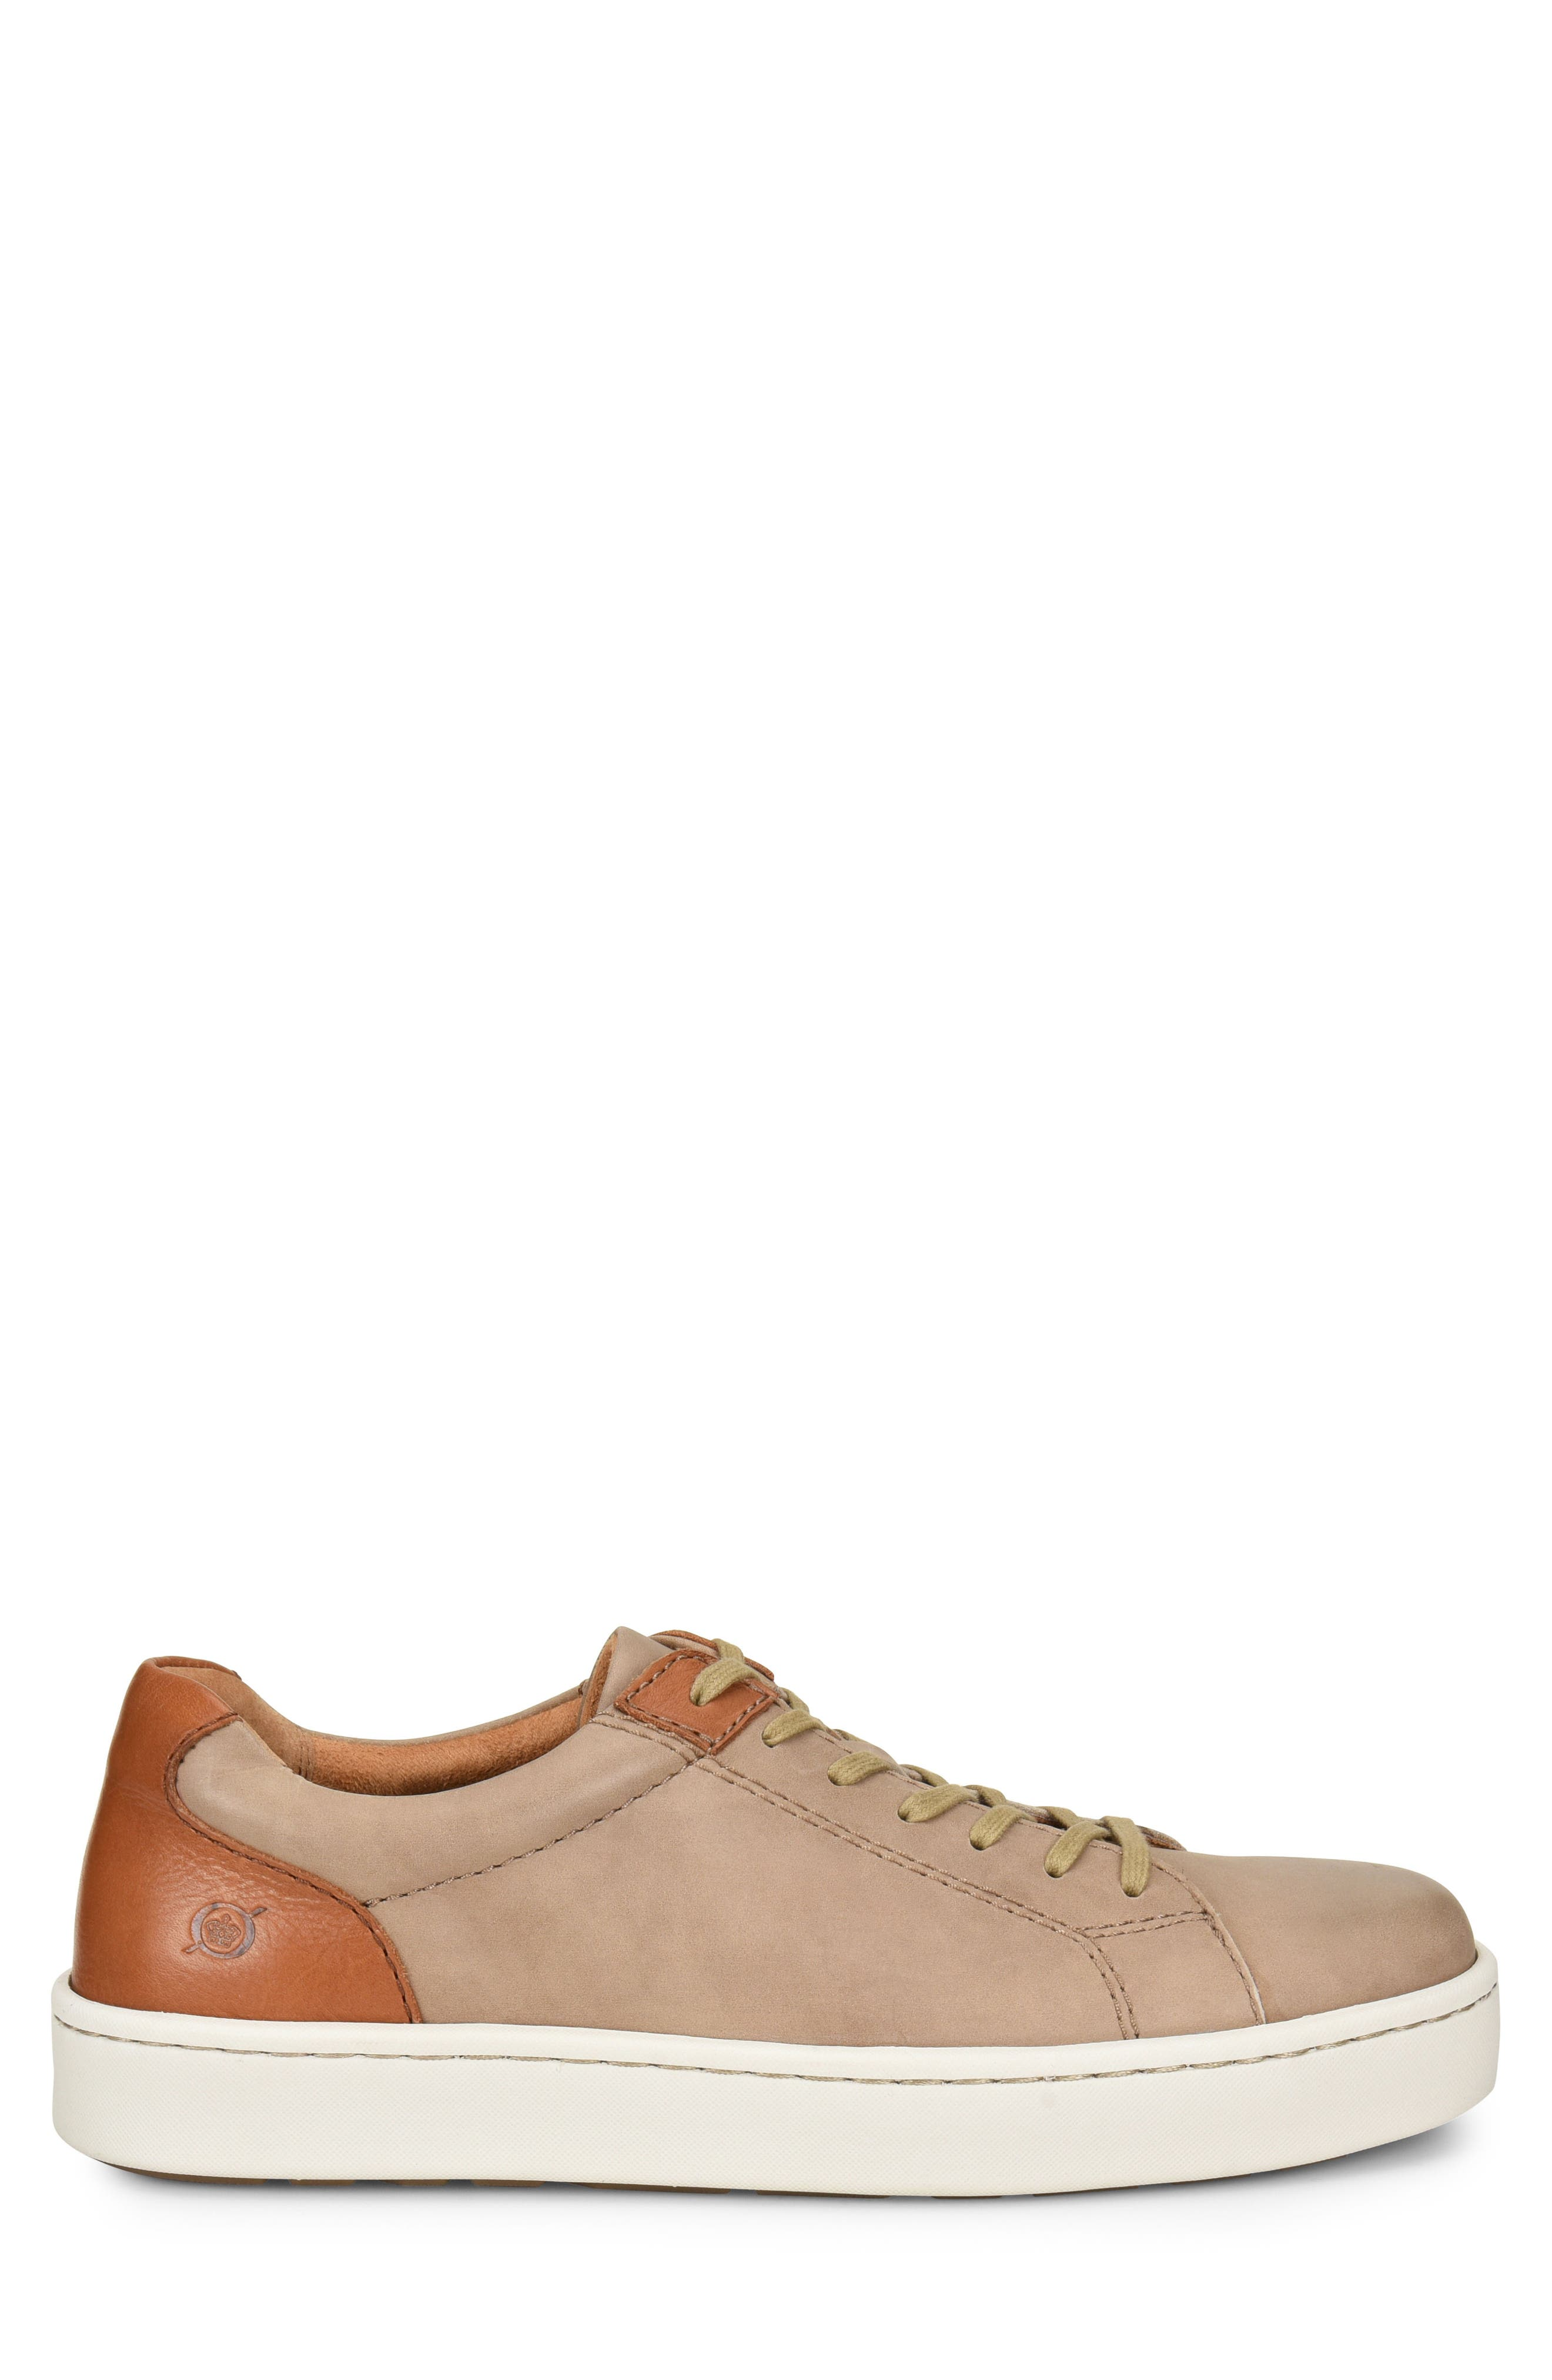 Jib Sneaker,                             Alternate thumbnail 3, color,                             Taupe/ Brown Leather